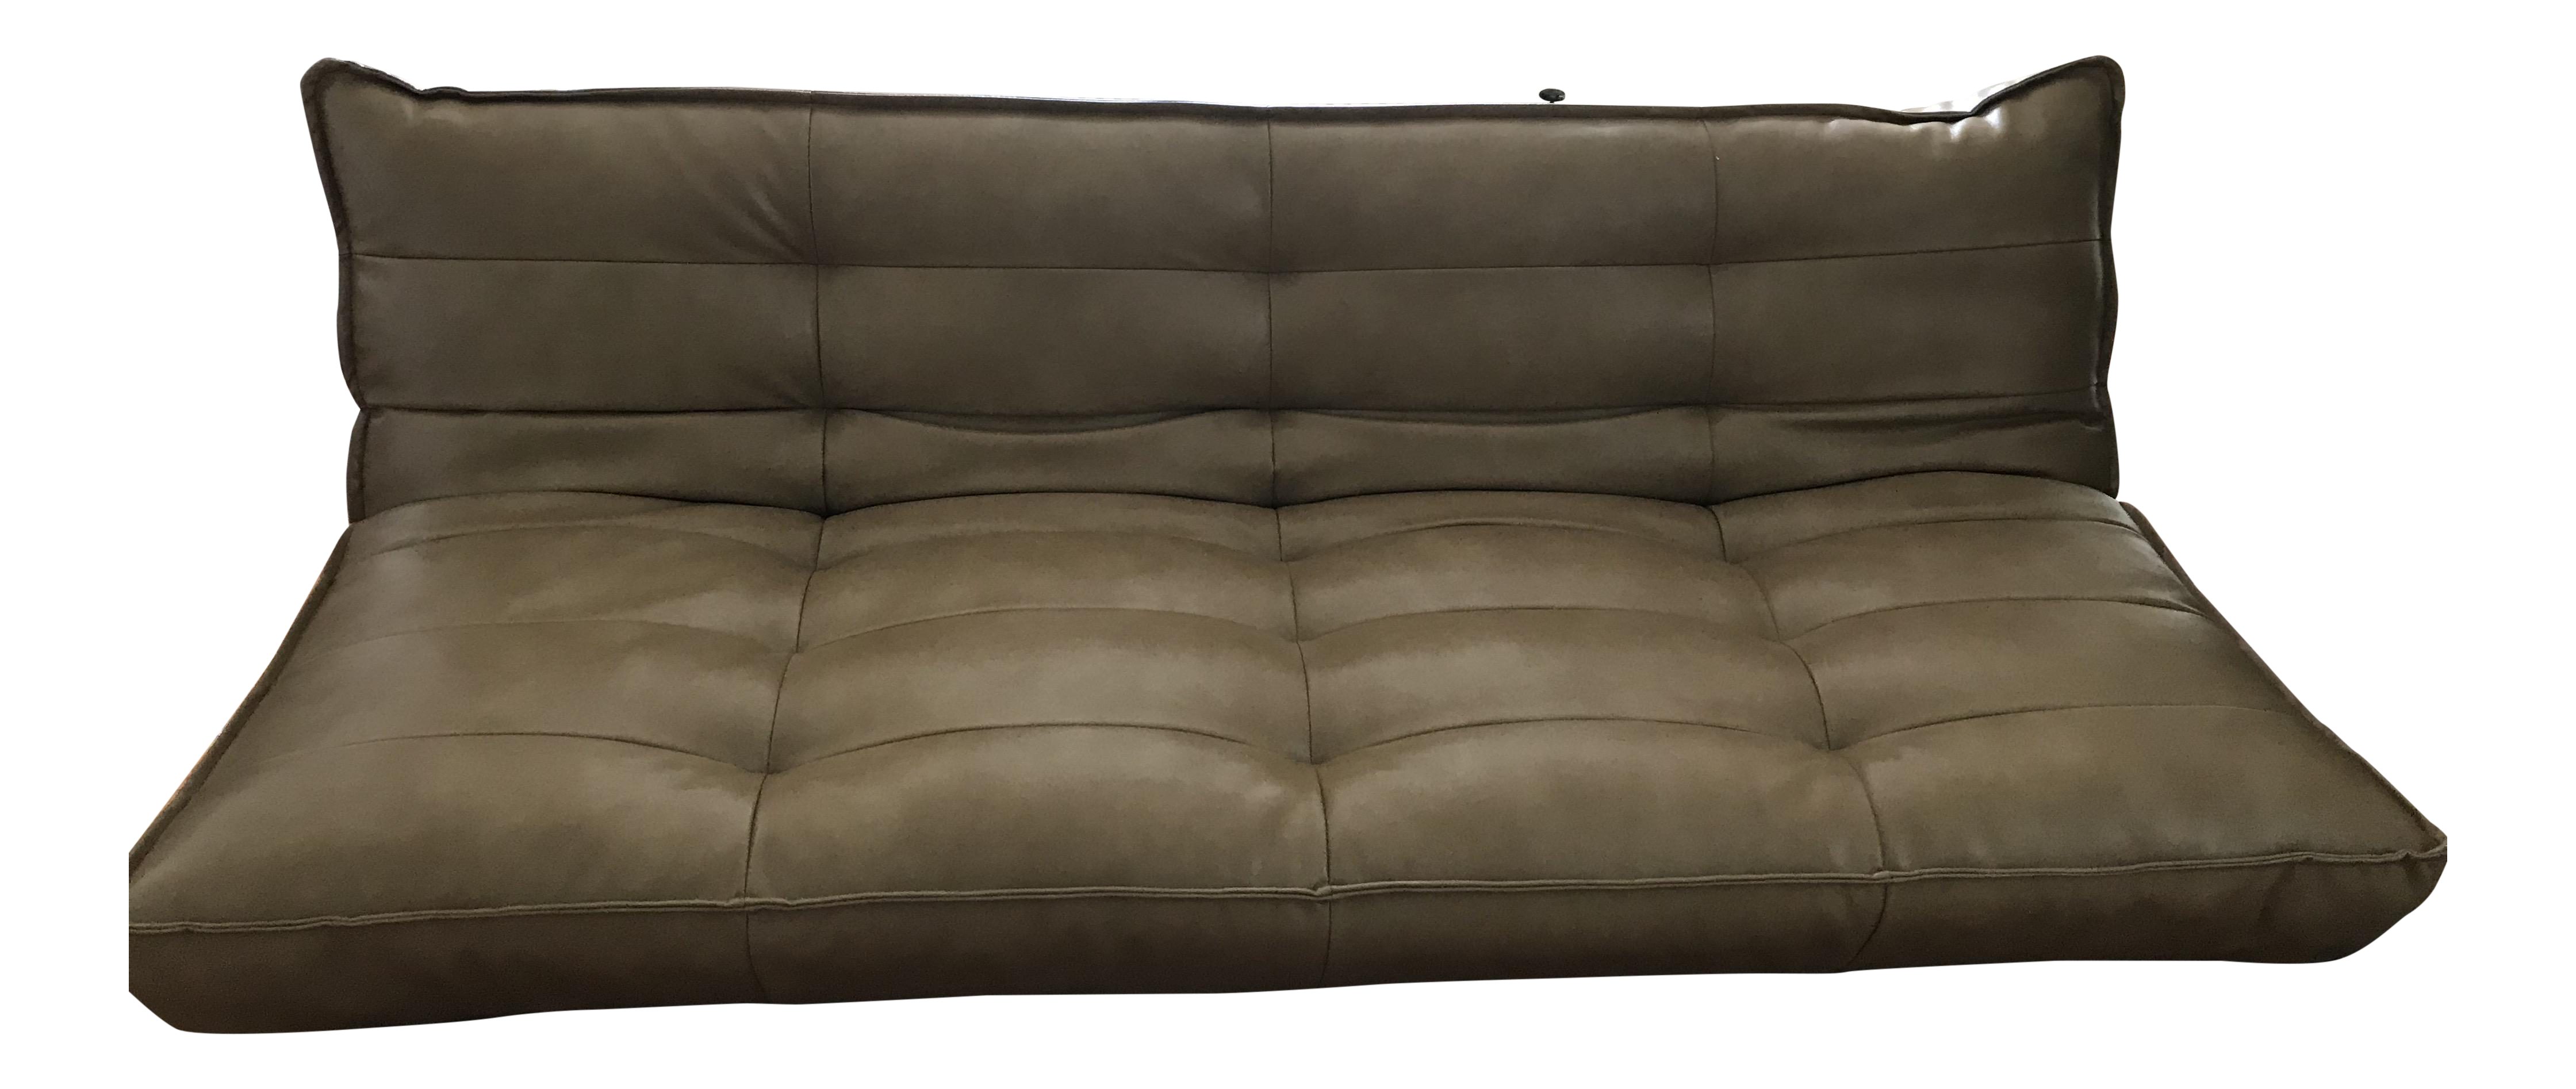 Recycled Leather XL Sleeper Sofa Urban Outfitters   Image 1 Of 2